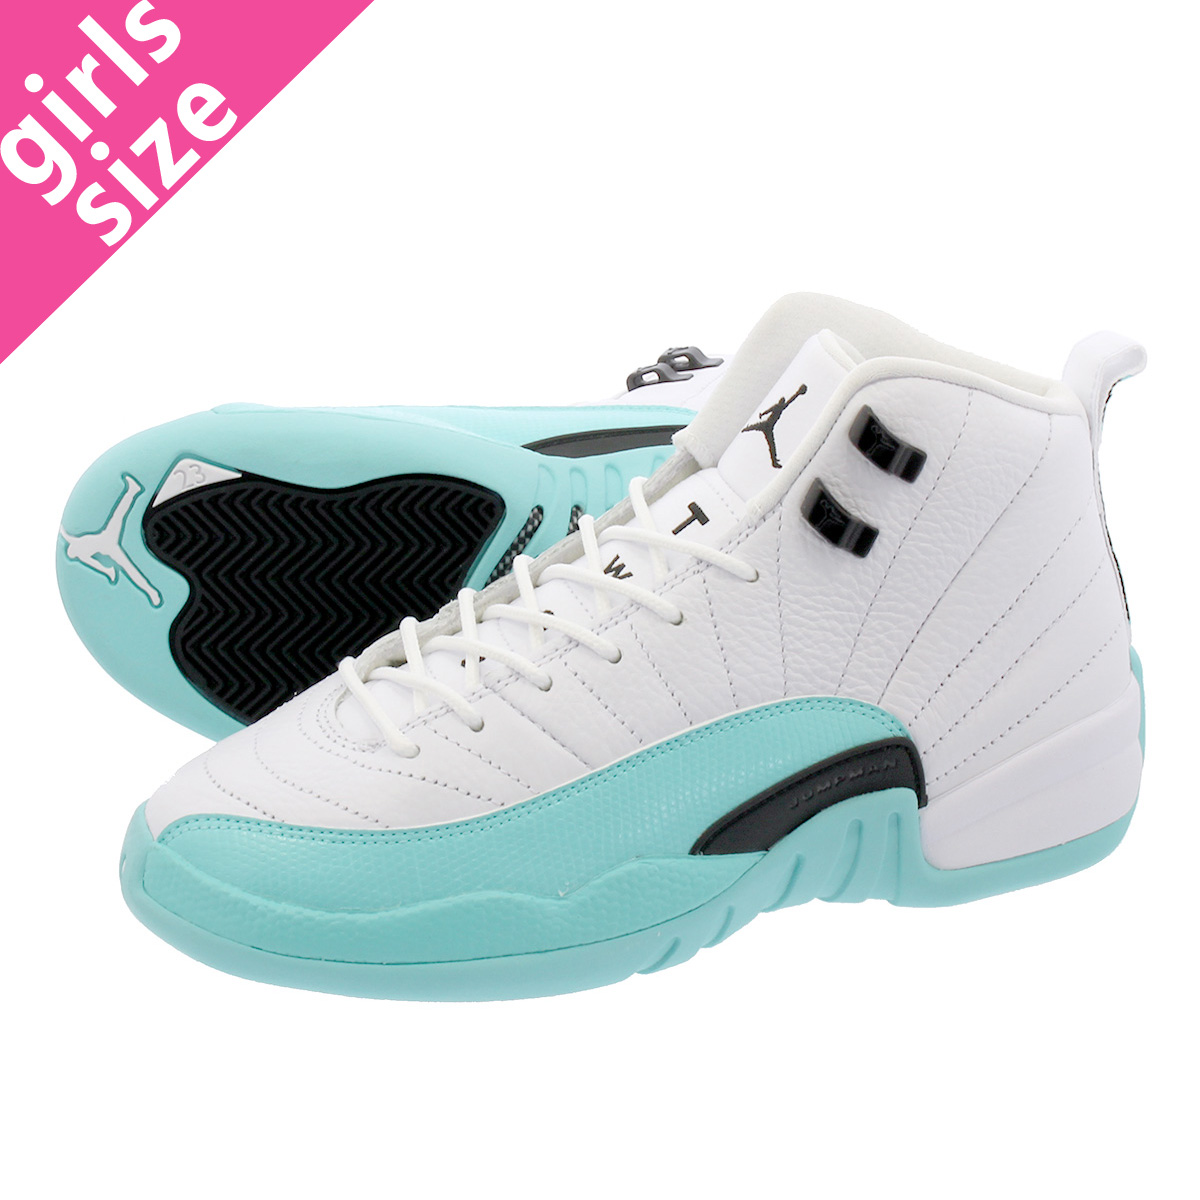 3d4daf9c0f107a NIKE AIR JORDAN 12 RETRO GG Nike Air Jordan 12 nostalgic GG WHITE LIGHT  AQUA BLACK 510